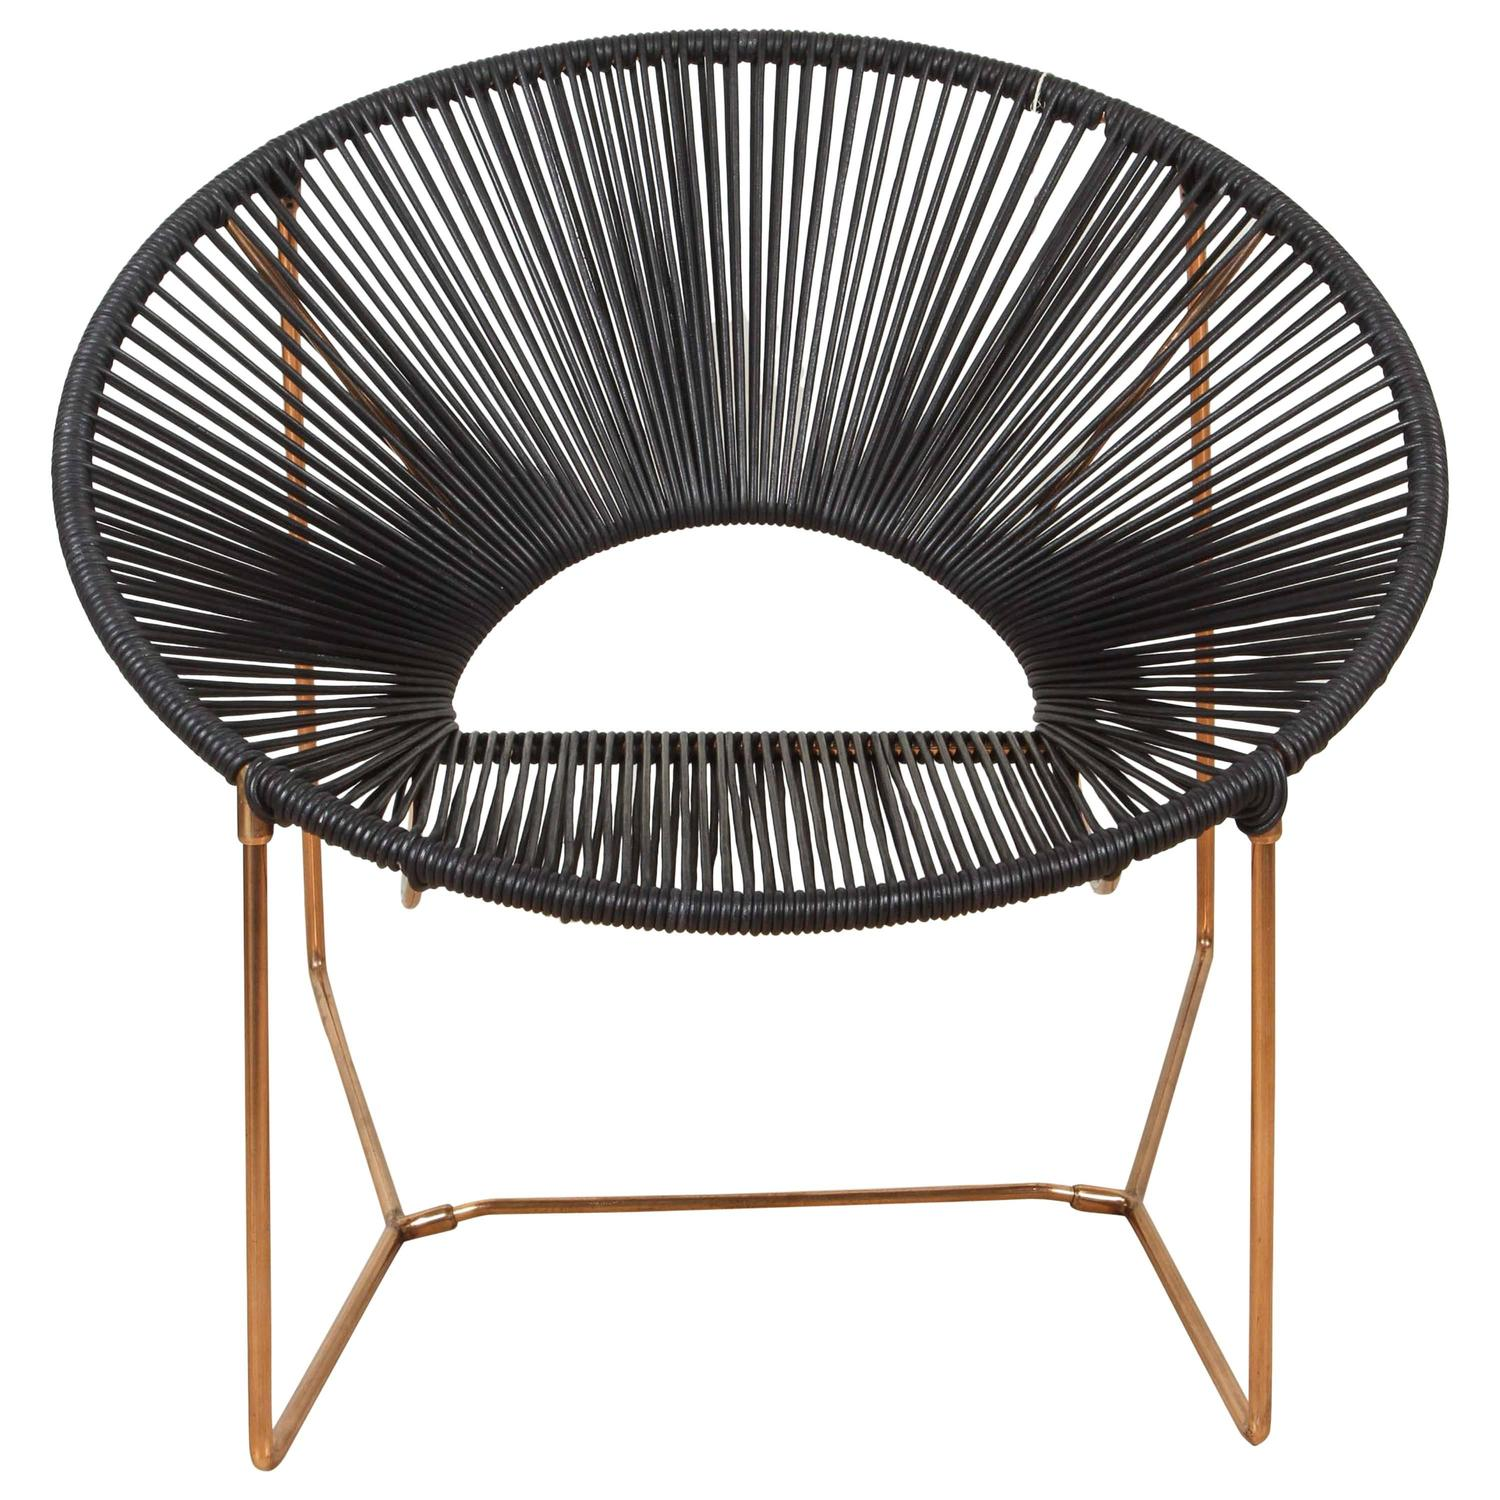 Cali Chair in Copper and Leather by Leon Leon at 1stdibs